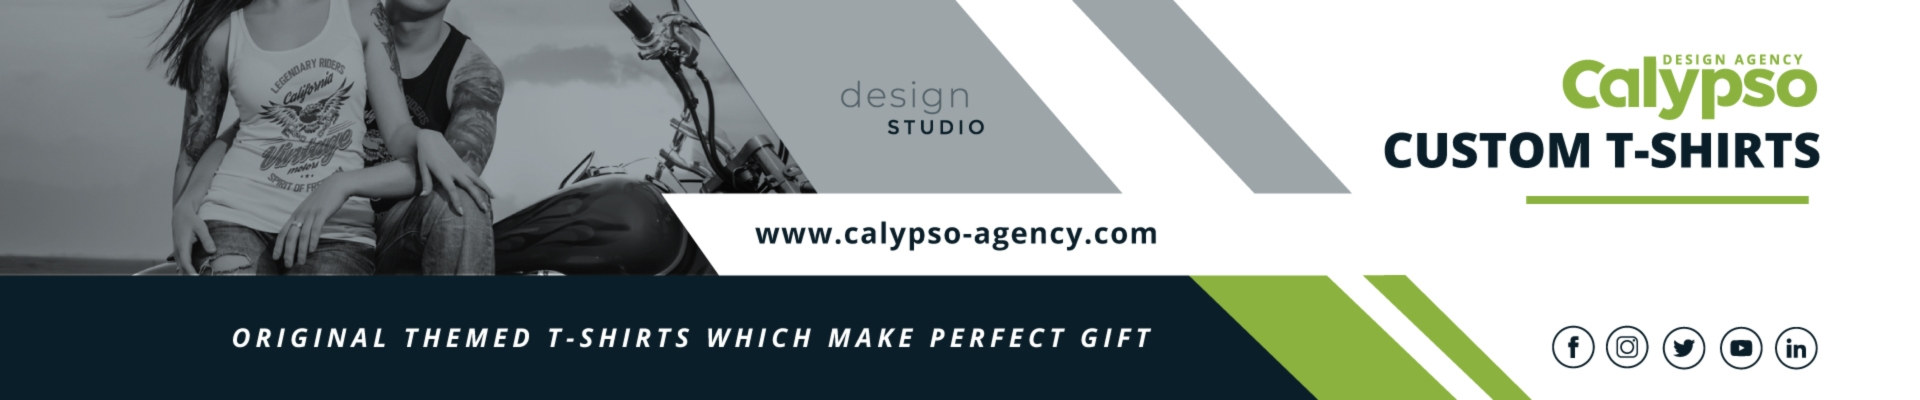 Showroom - Calypso Design